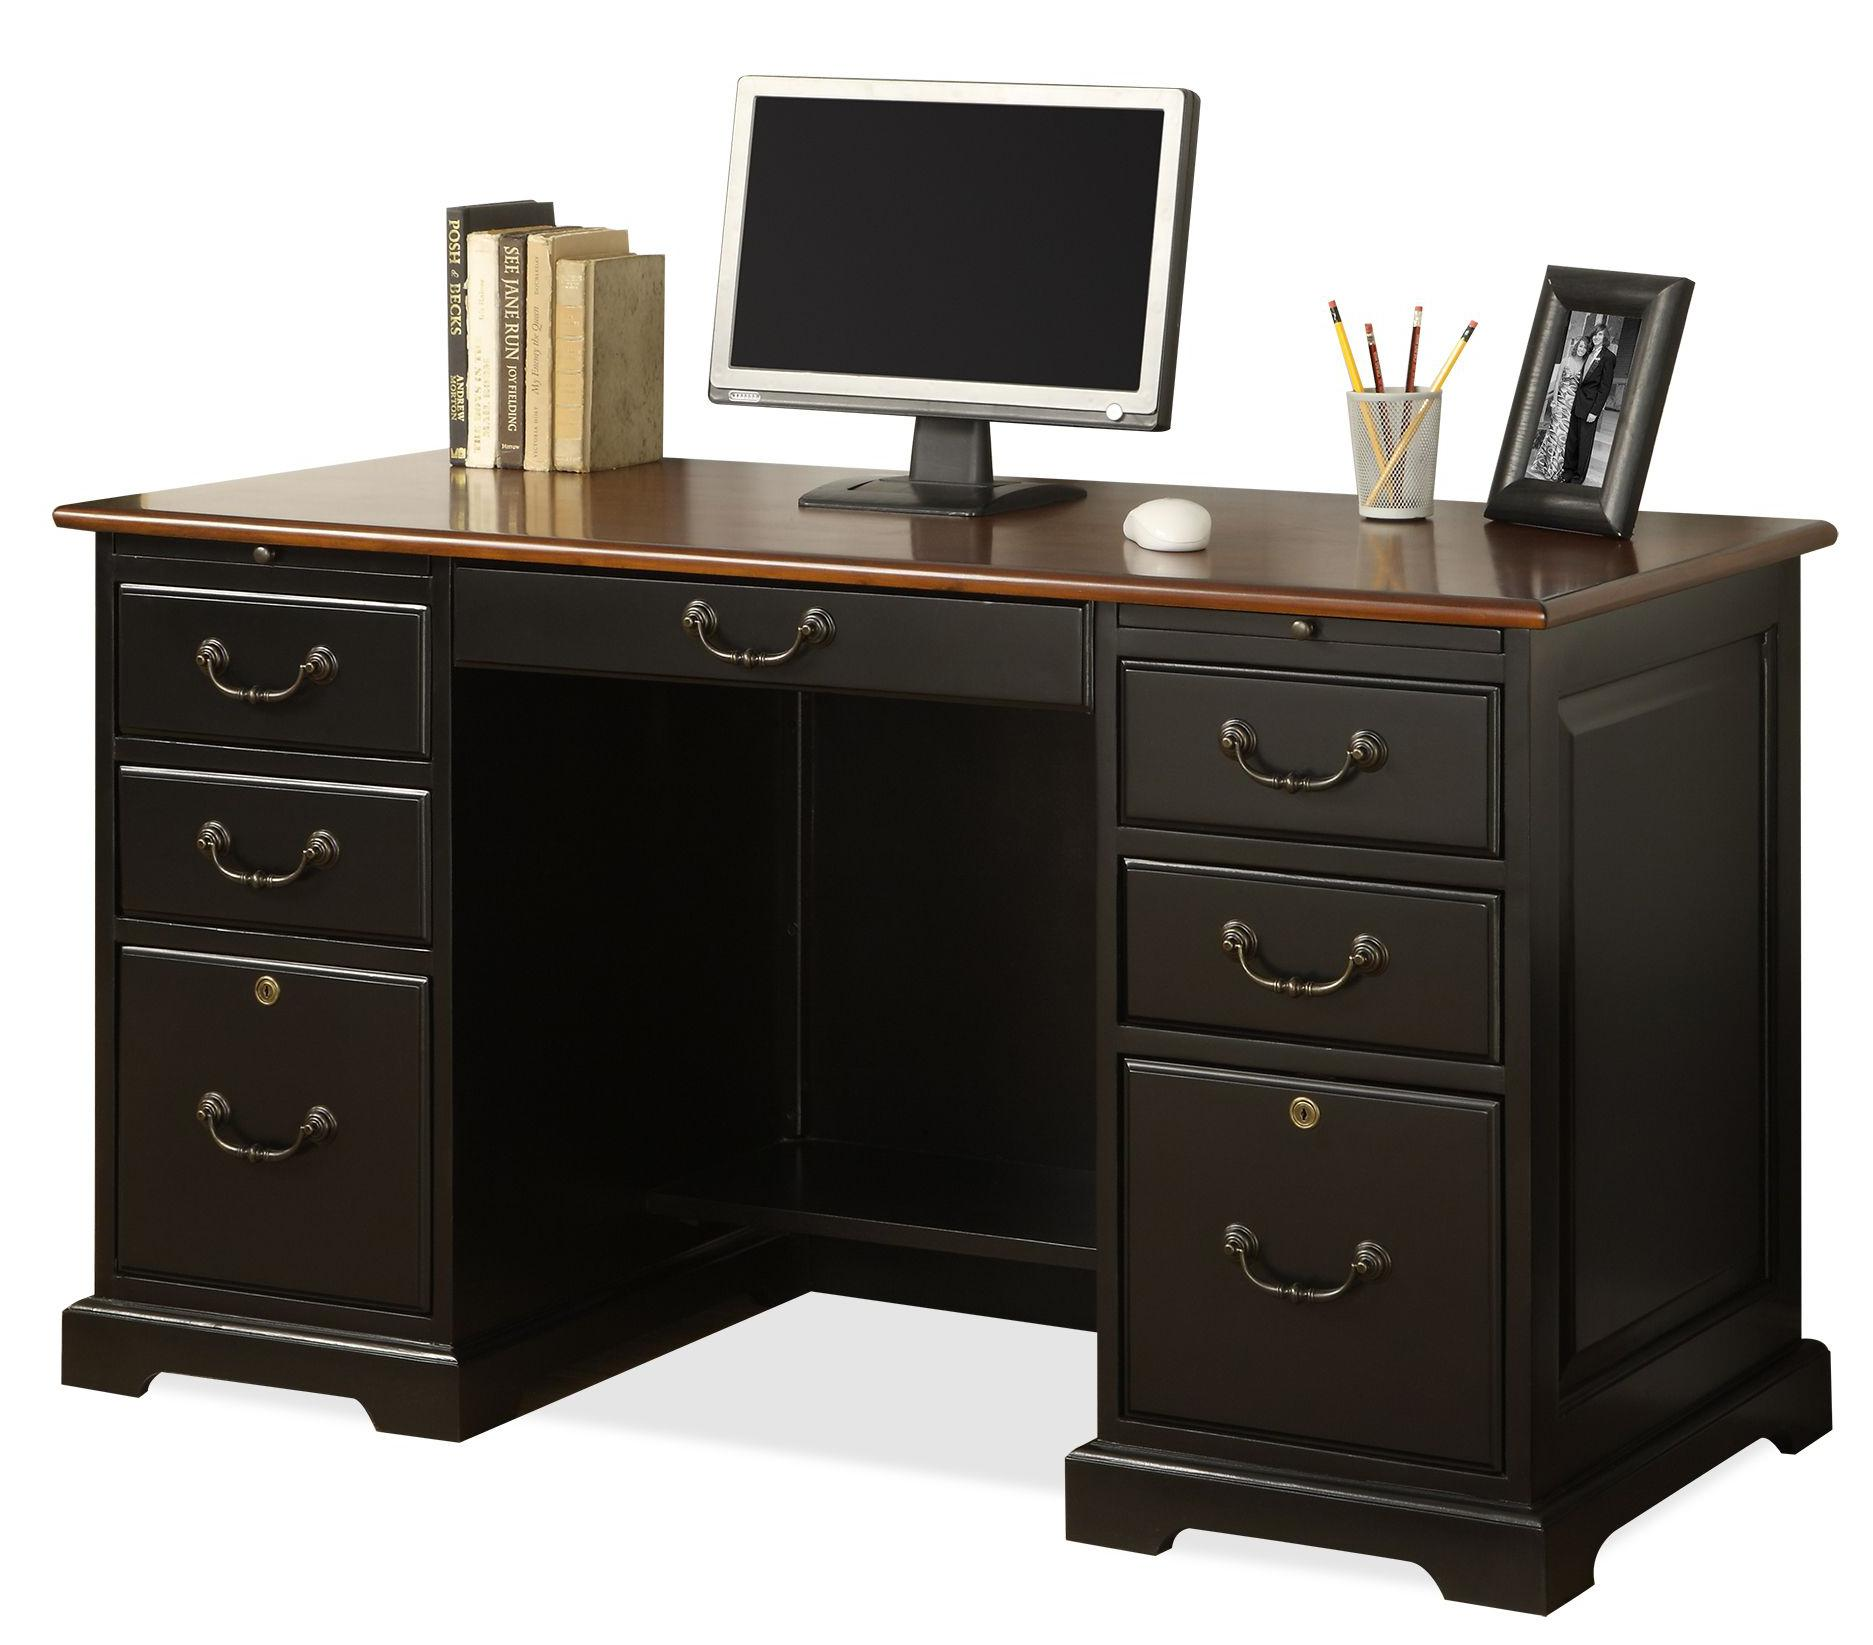 Riverside Furniture Bridgeport  54 Inch Desk - Item Number: 7154